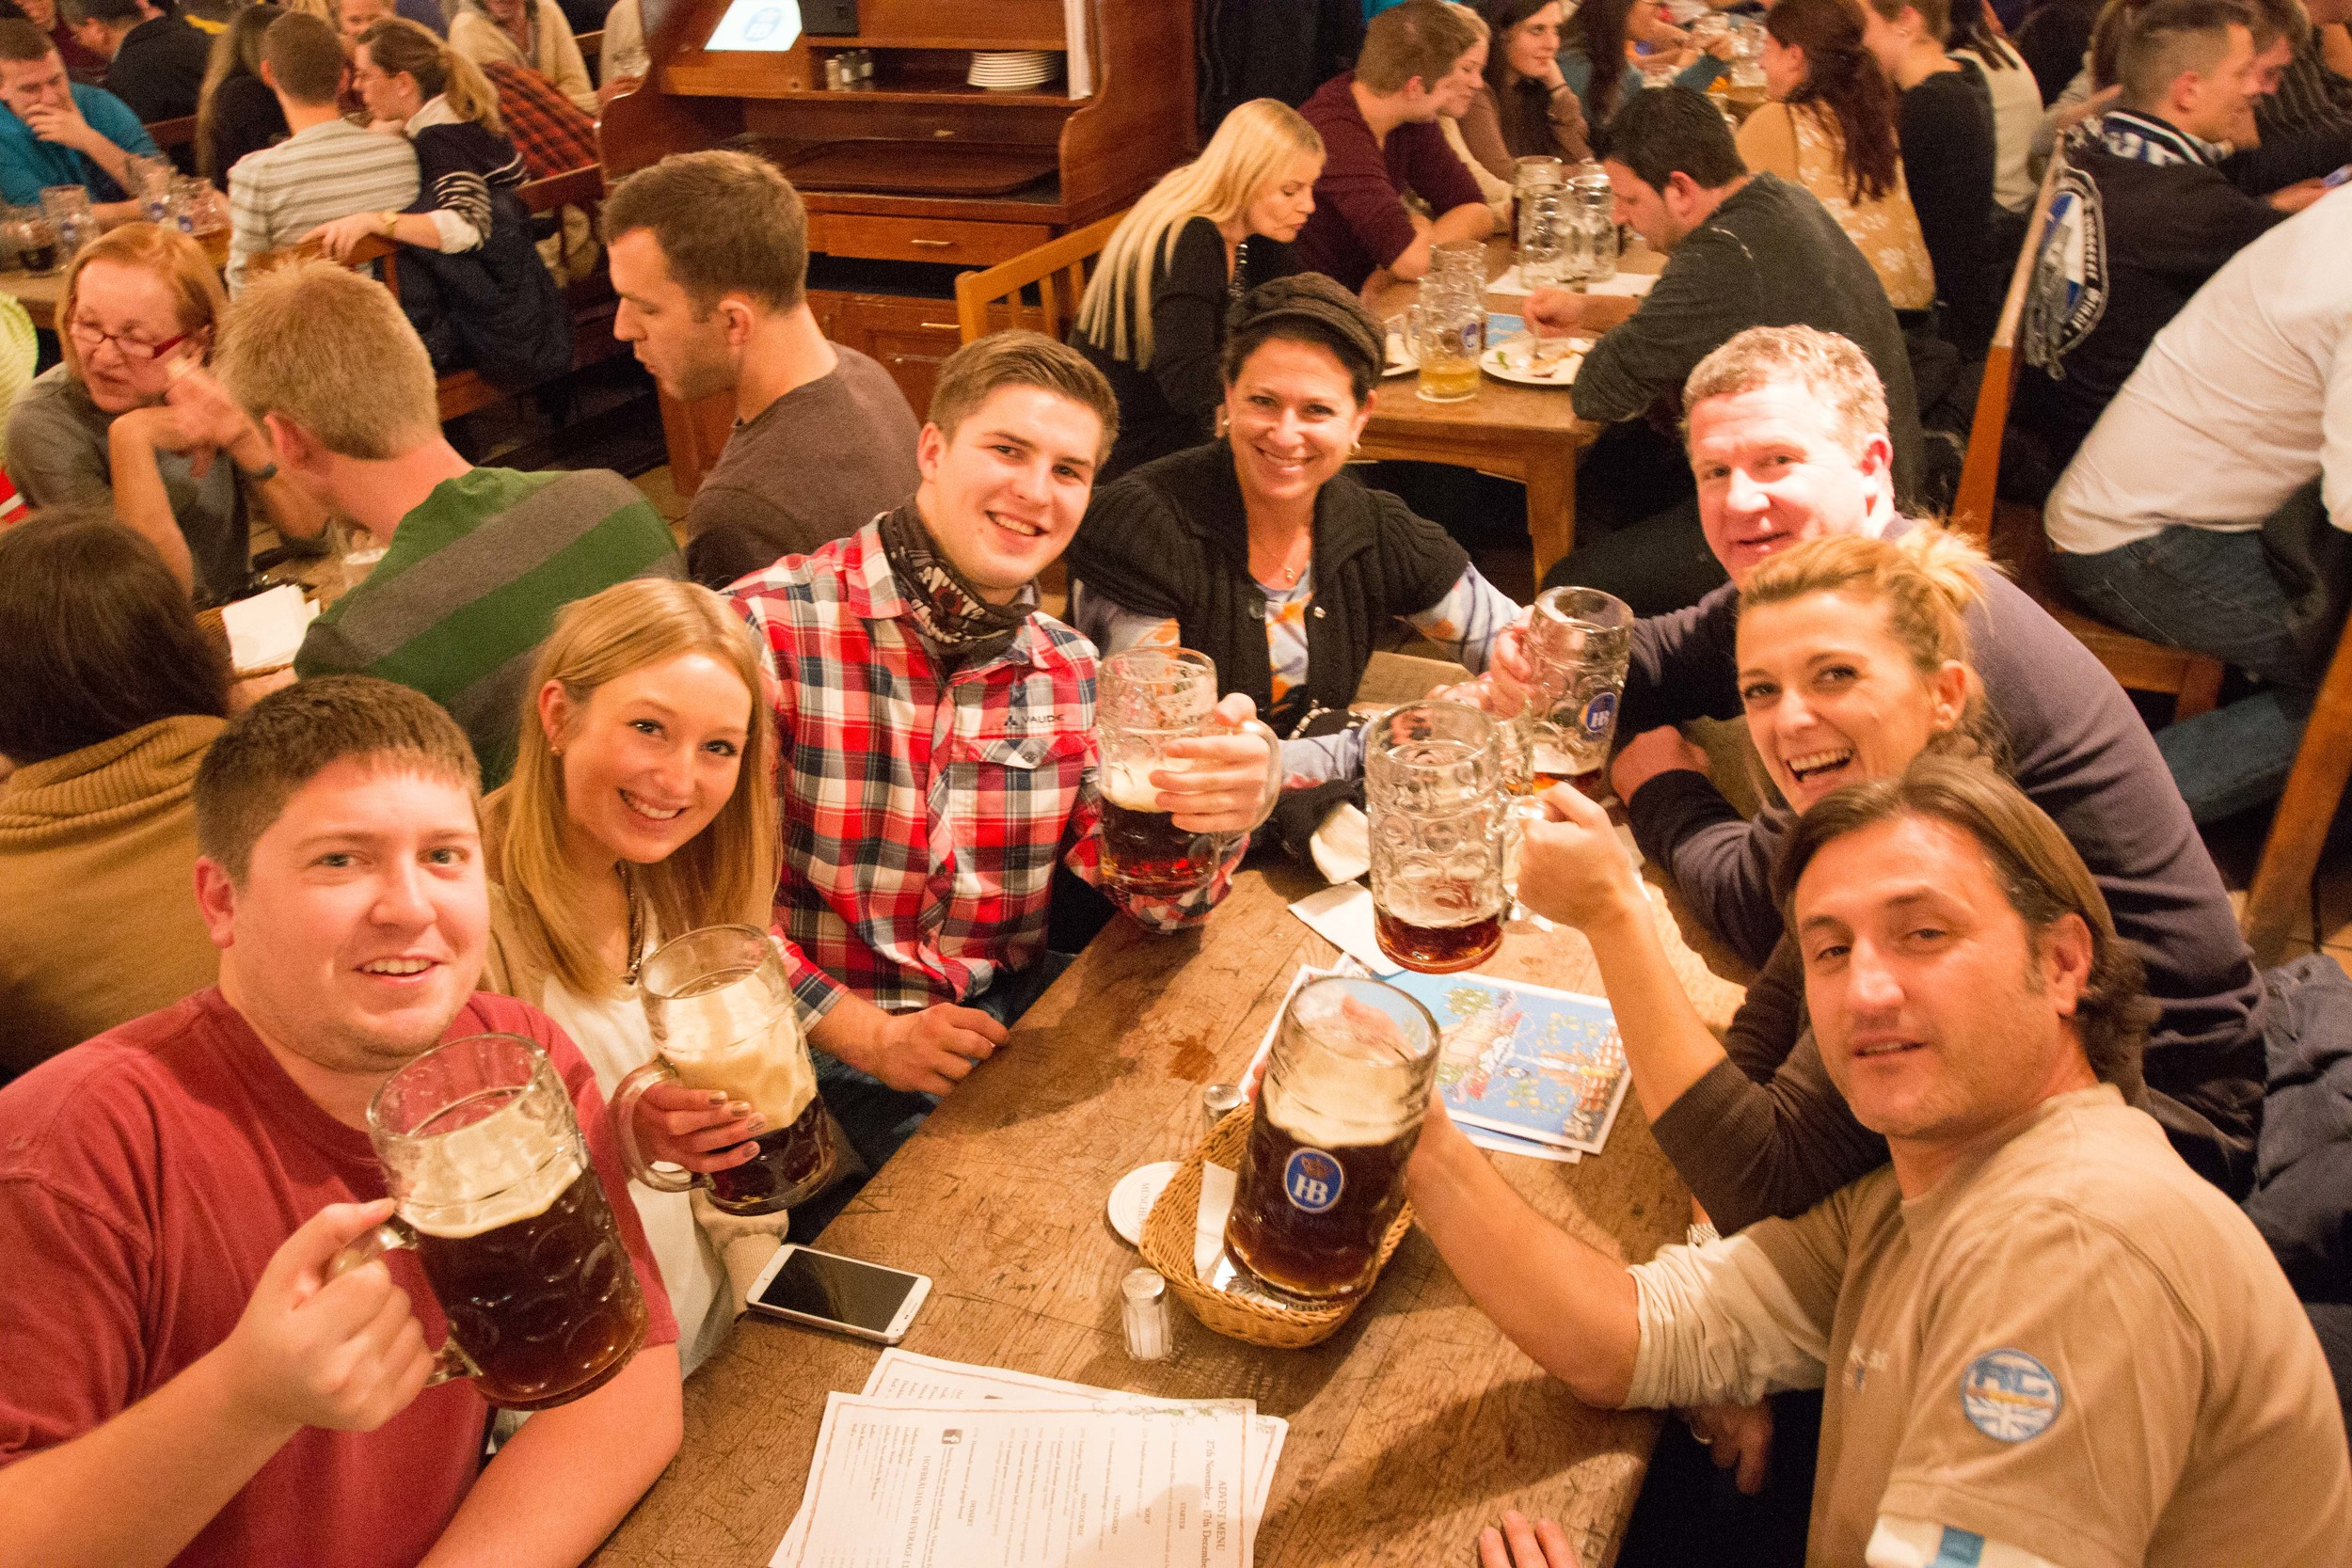 Enjoying a Mass (1 Liter of beer!) at the Hofbrauhaus - make sure you make friends with your tablemates. Here there were Spanish, American, Russian, and Germans!